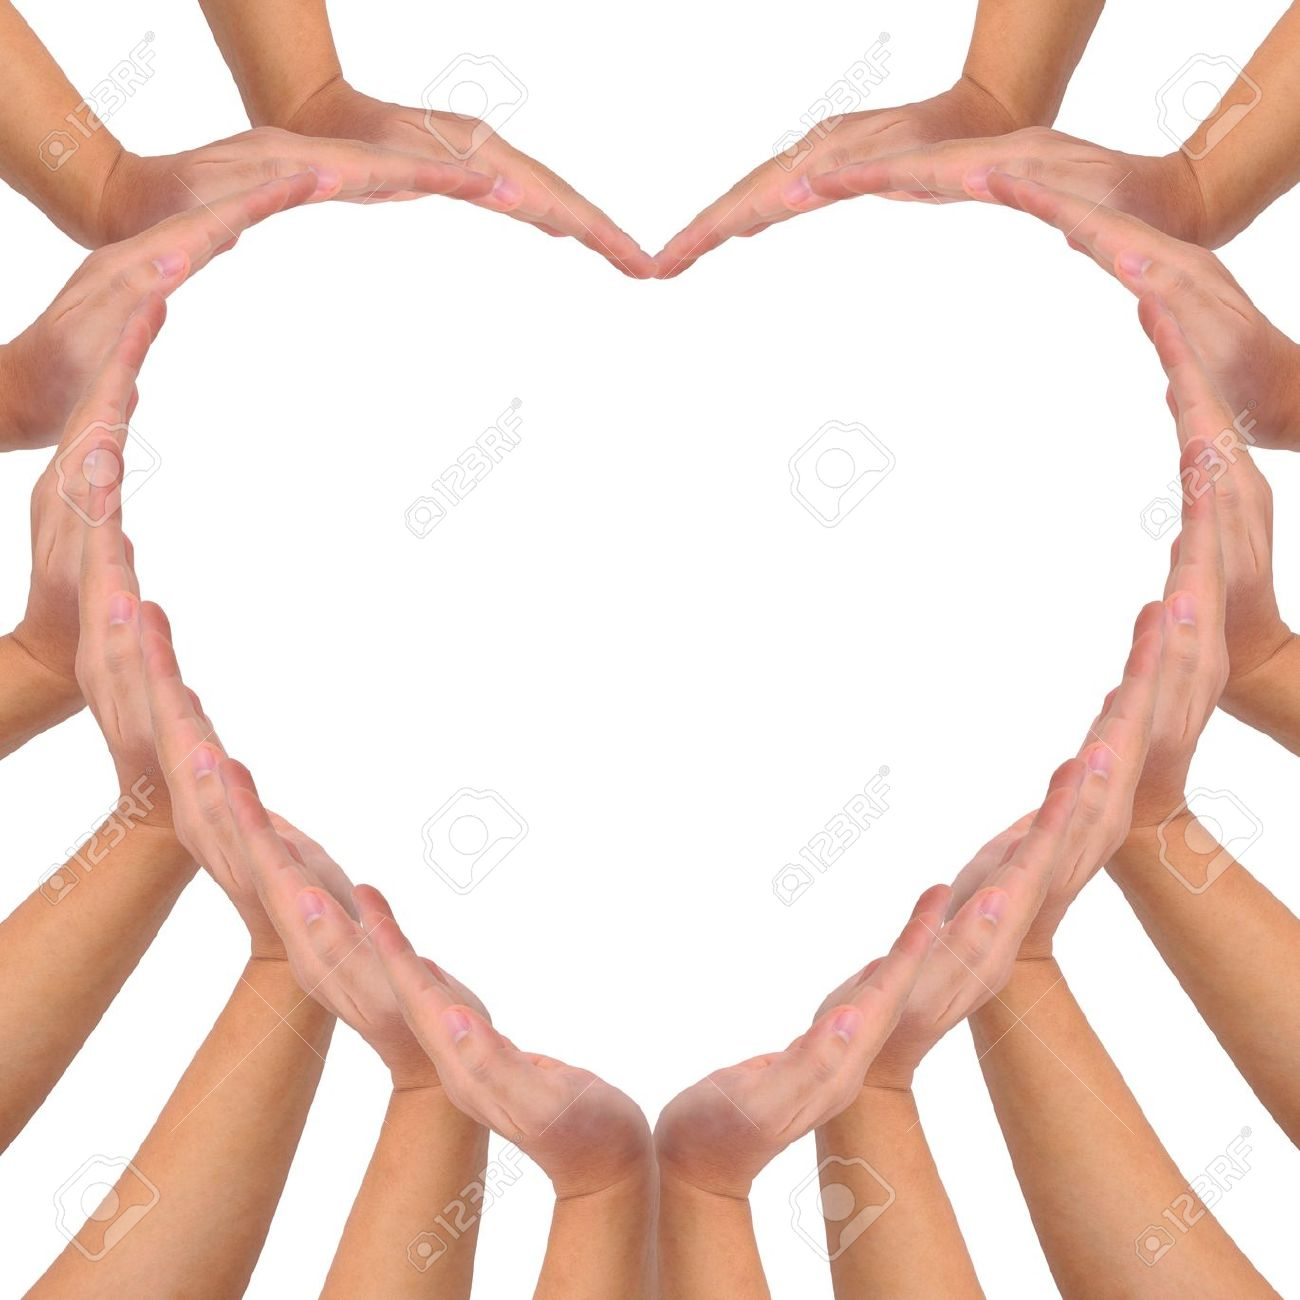 Conceptual symbol of love hands making a heart shape on white conceptual symbol of love hands making a heart shape on white background with a copy biocorpaavc Gallery